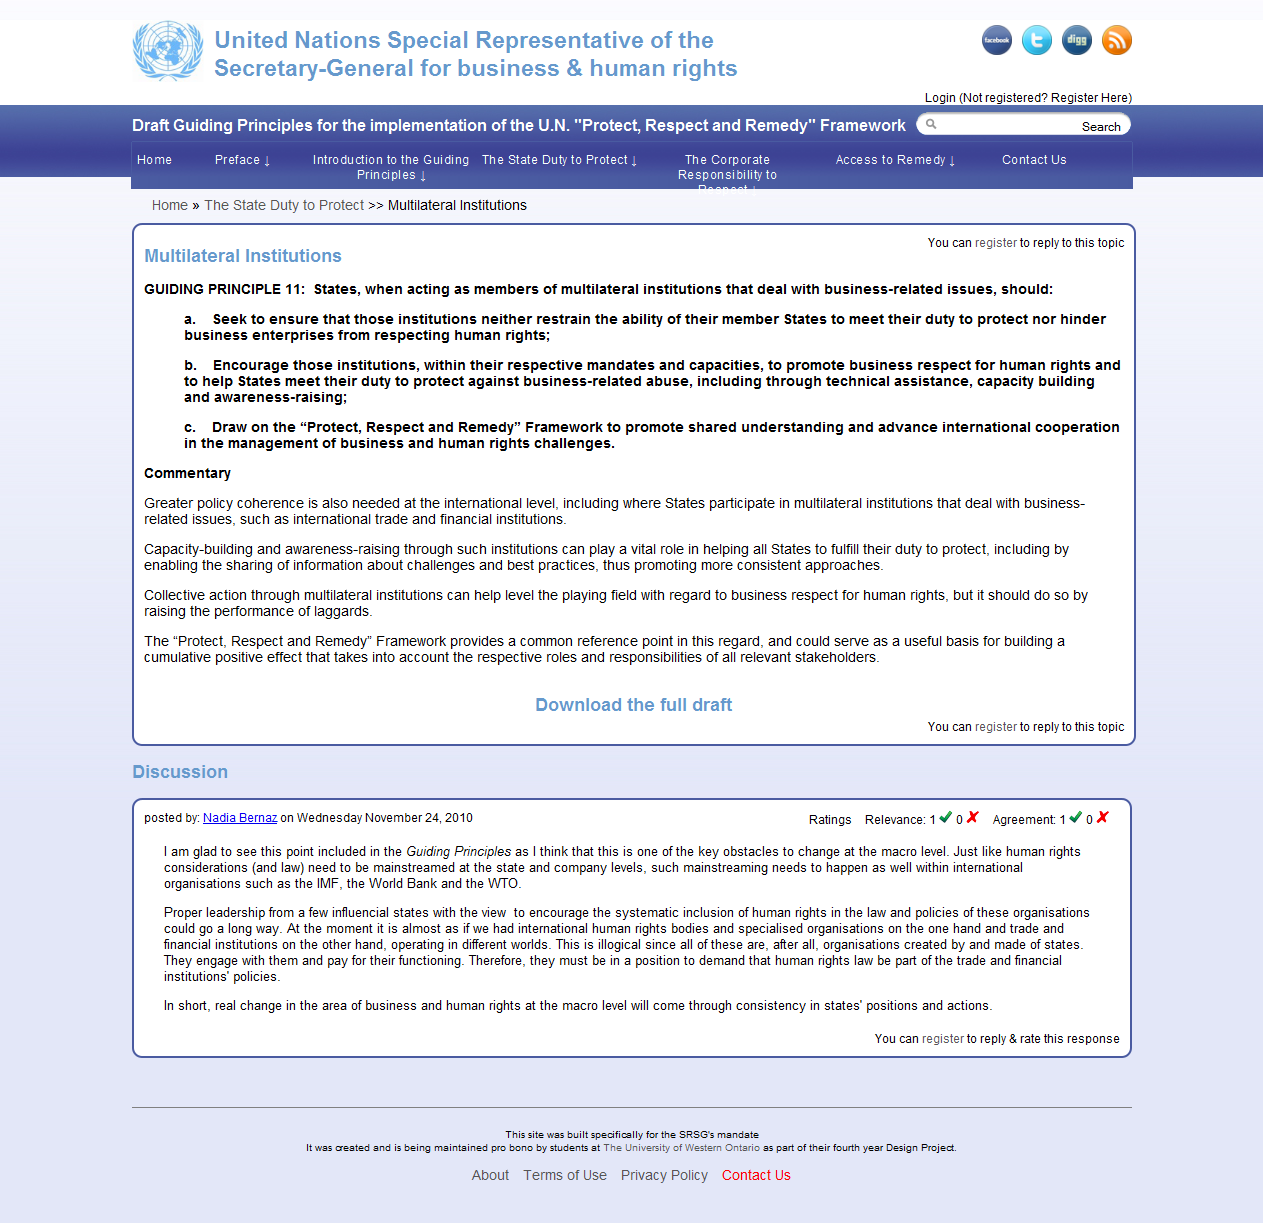 UN SGRS HR consultation